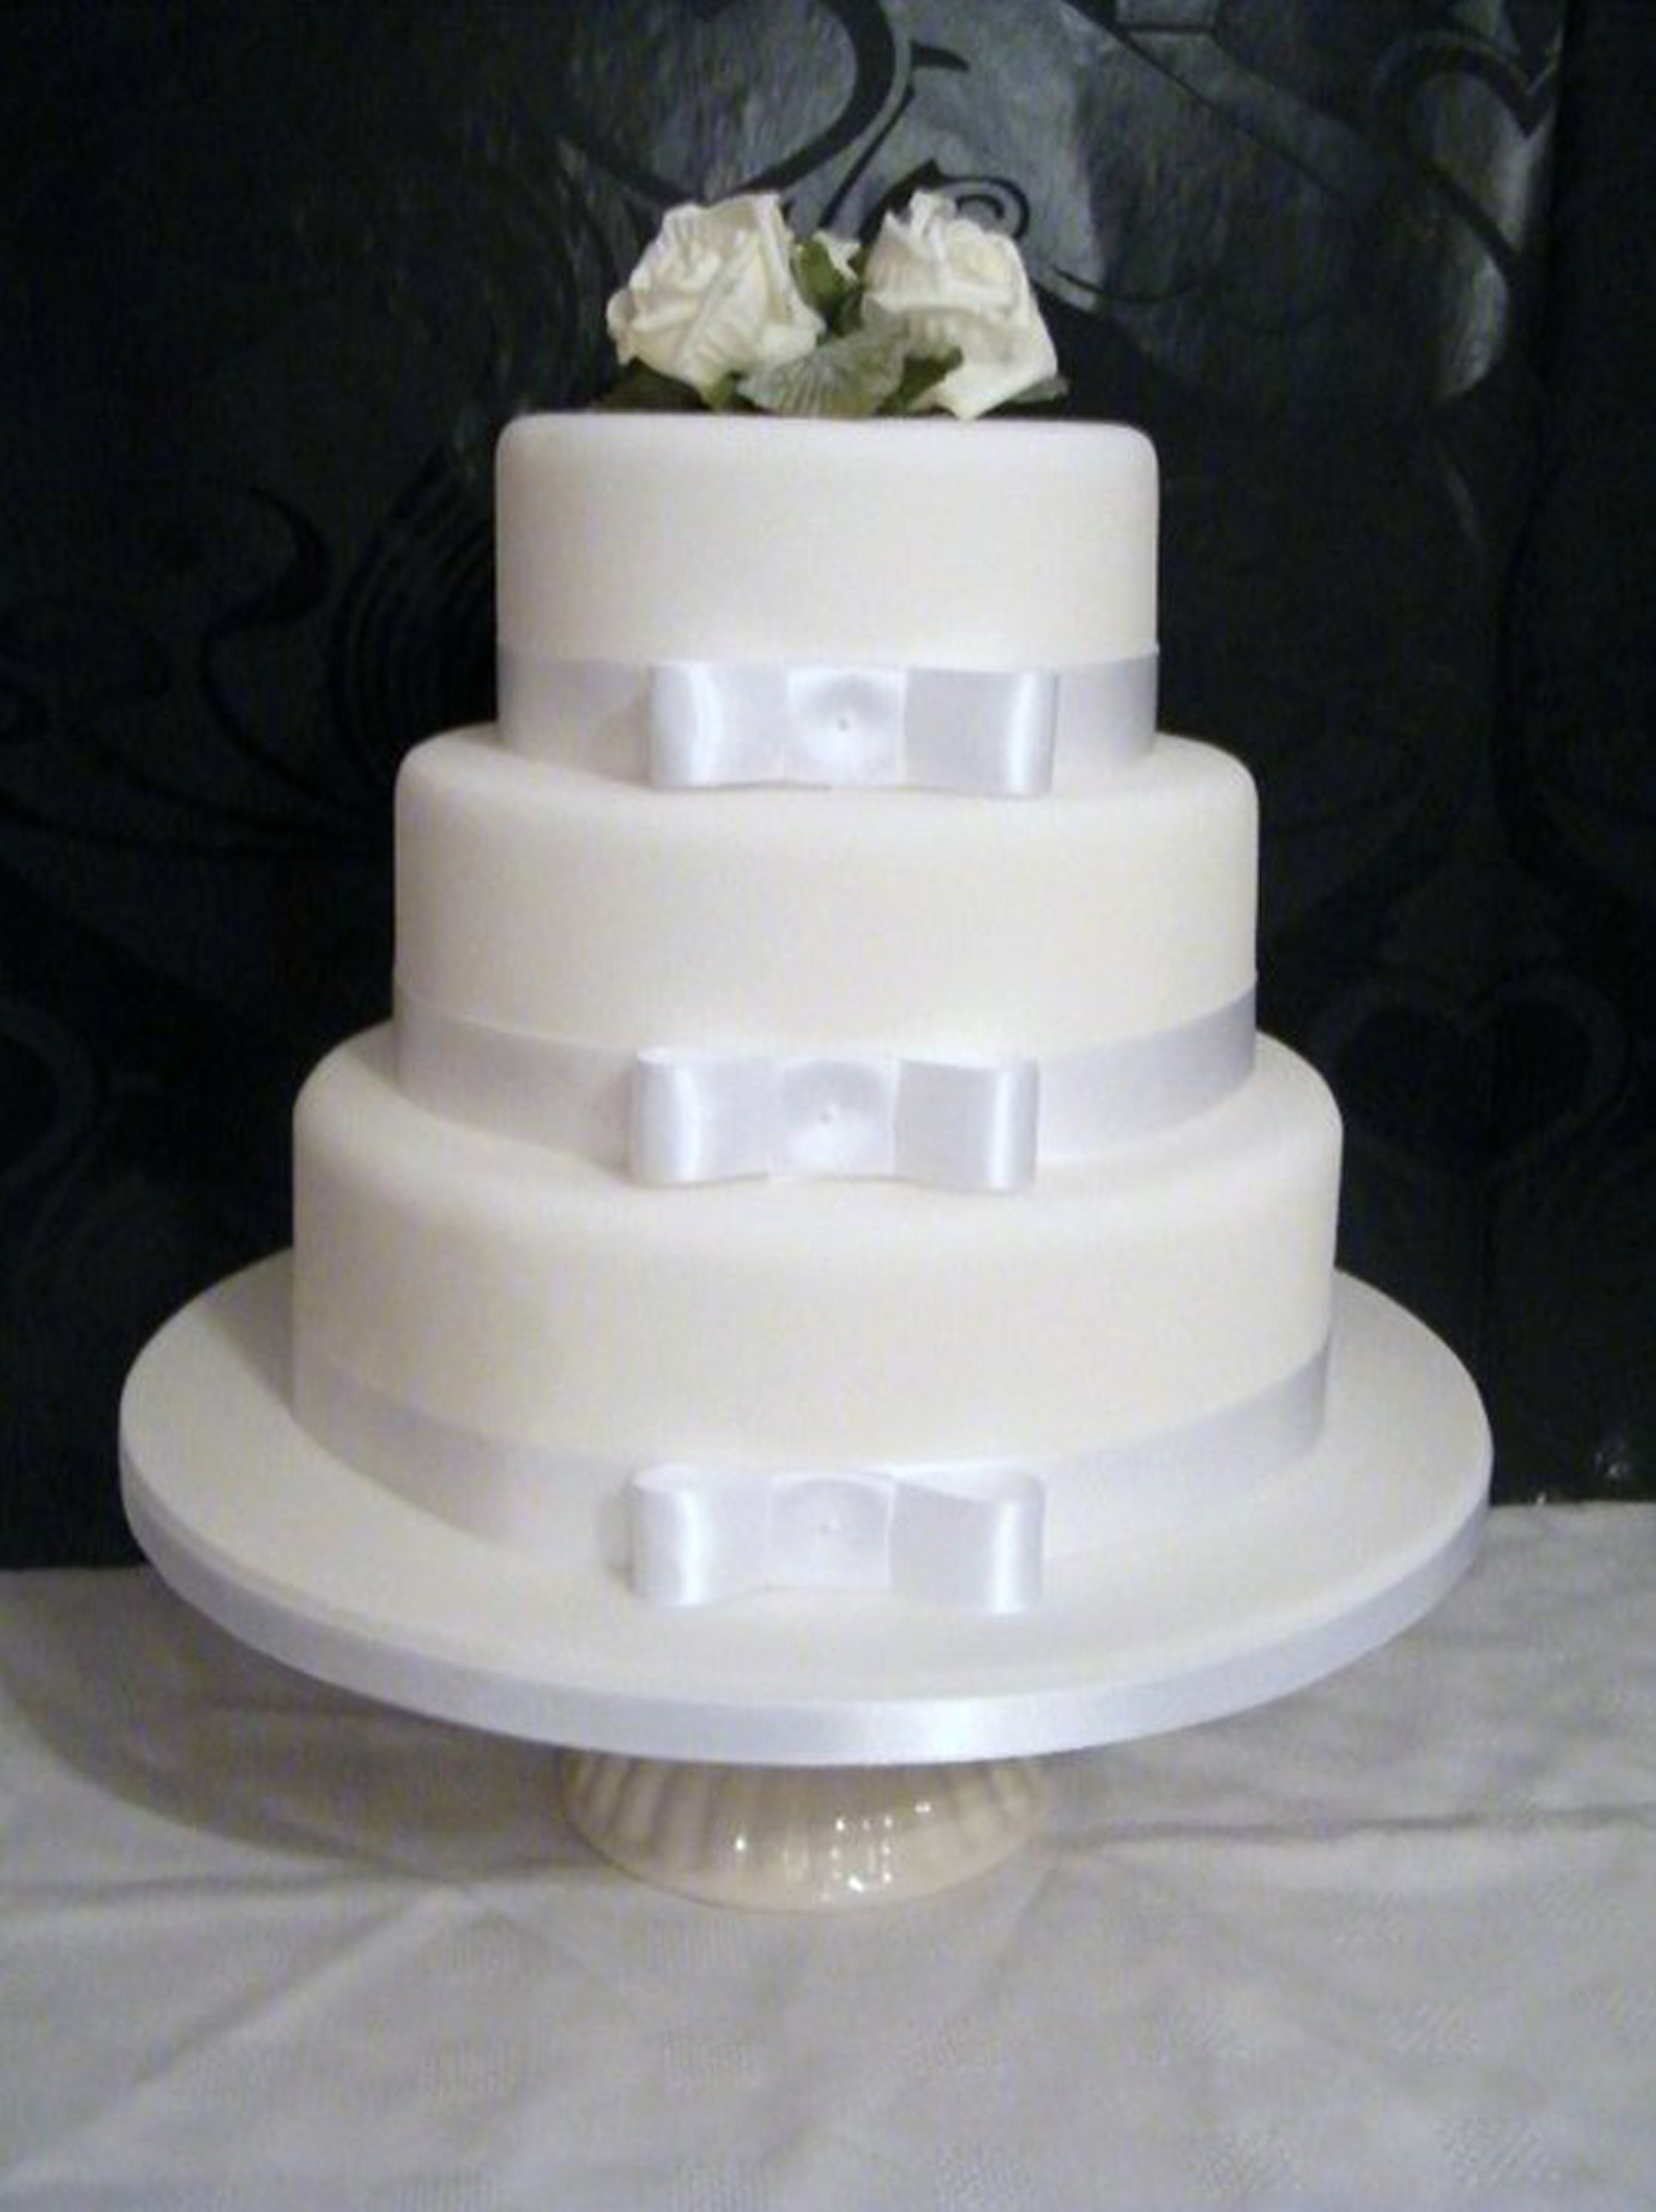 5 Top Budget Savvy Tips To Consider When Choosing Your Wedding Cake